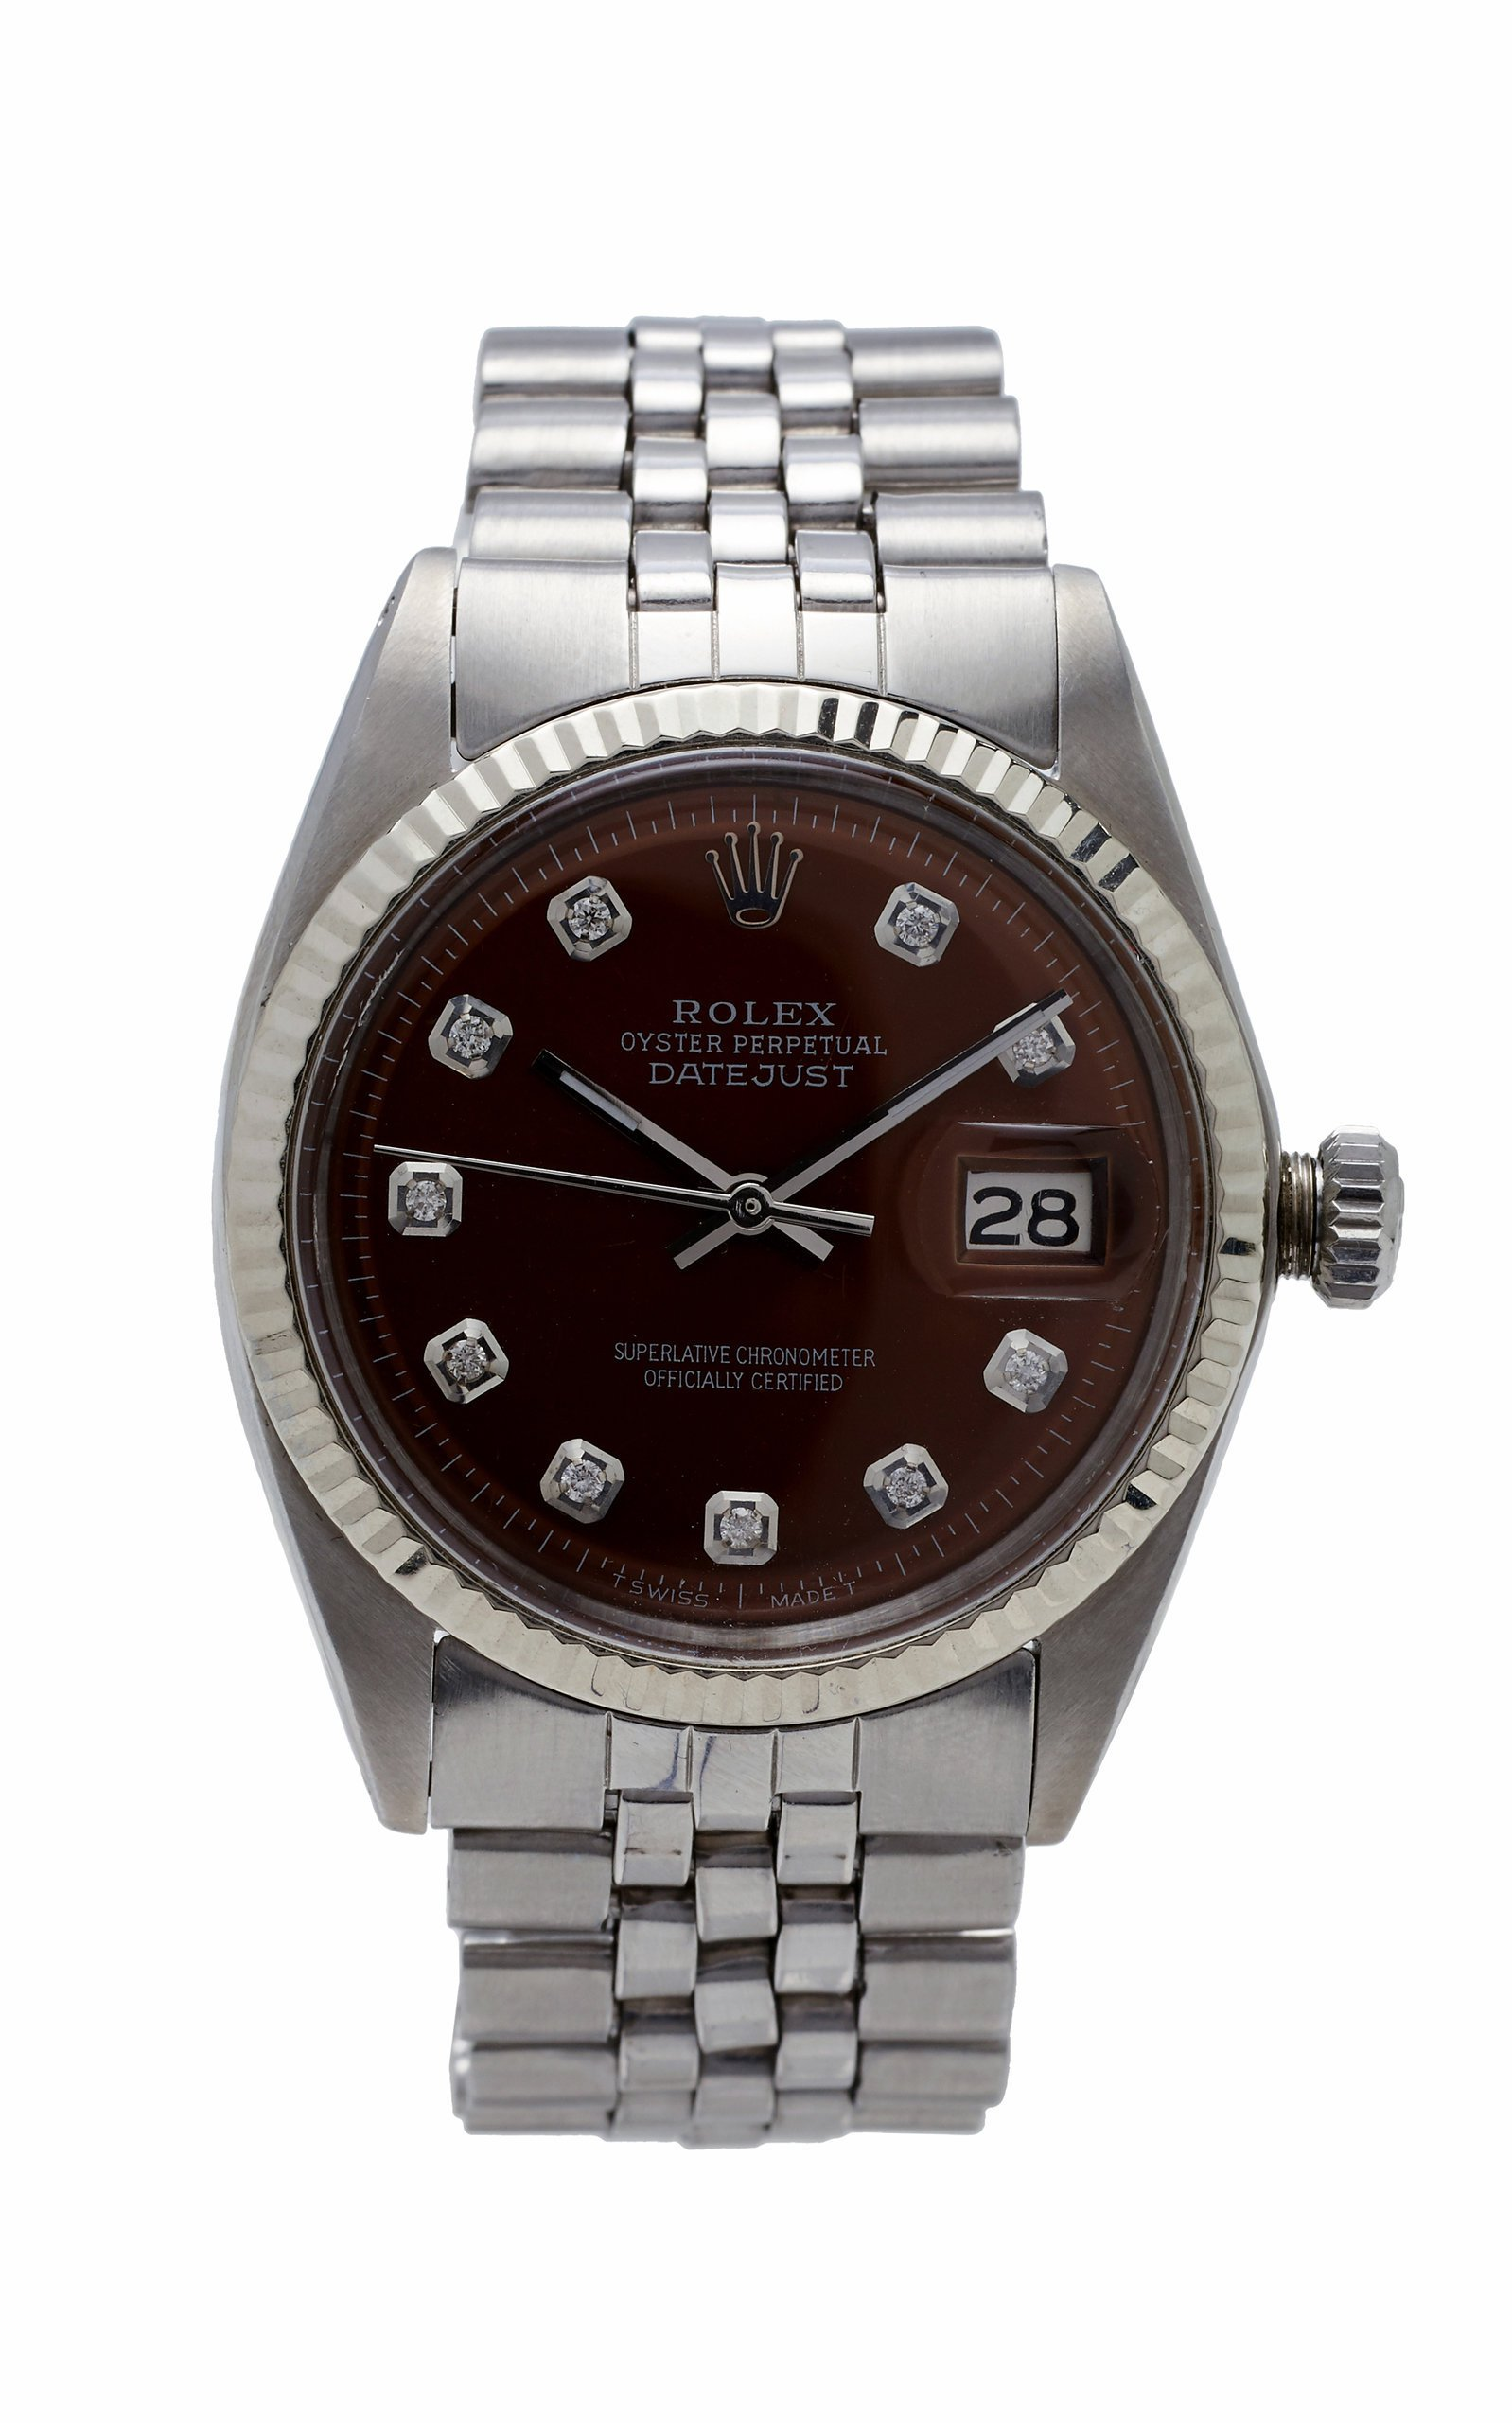 Vintage Watches Rolex Datejust 36mm Rootbeer Pearlized Diamond Dial